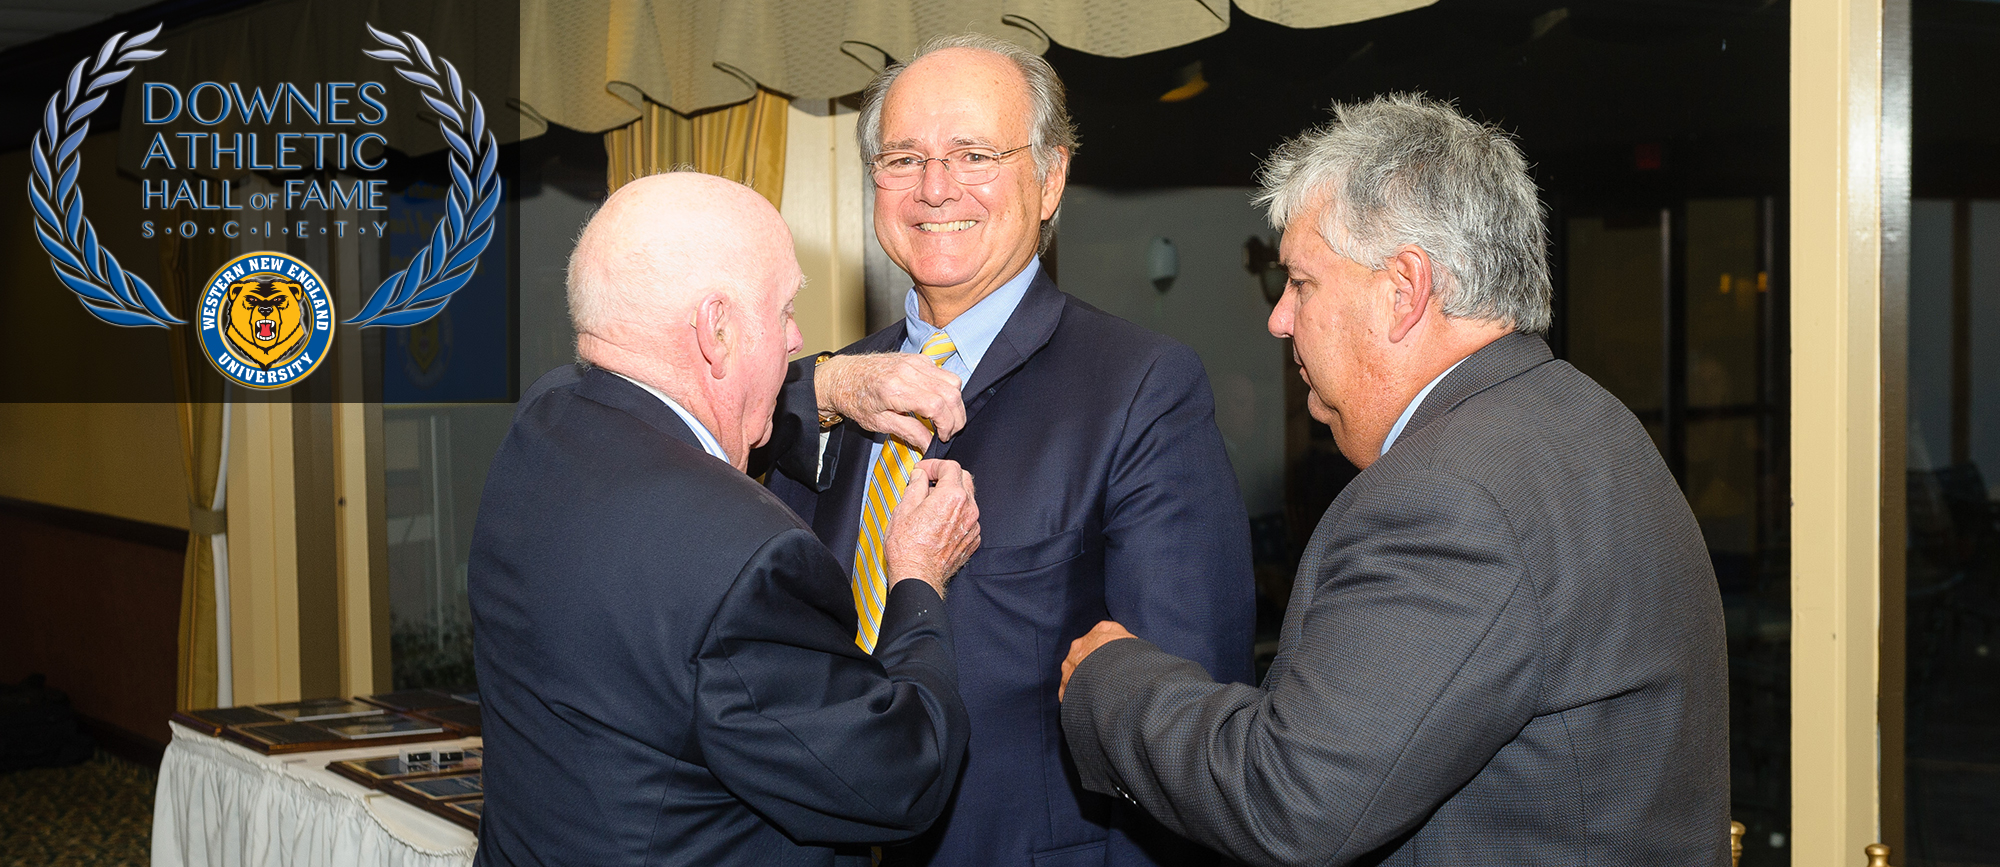 Longtime Western New England coach Bill Downes (left), the inaugural Downes Athletic Hall of Fame inductee, presented University President Dr. Anthony Caprio (middle), a 2005 inductee, with the first Downes Athletic Hall of Fame Society pin at the 2017 induction on September 22 with Athletic Director Joe Sassi (right) looking on. (Photo by Bill Sharon/Spartan SportShots)